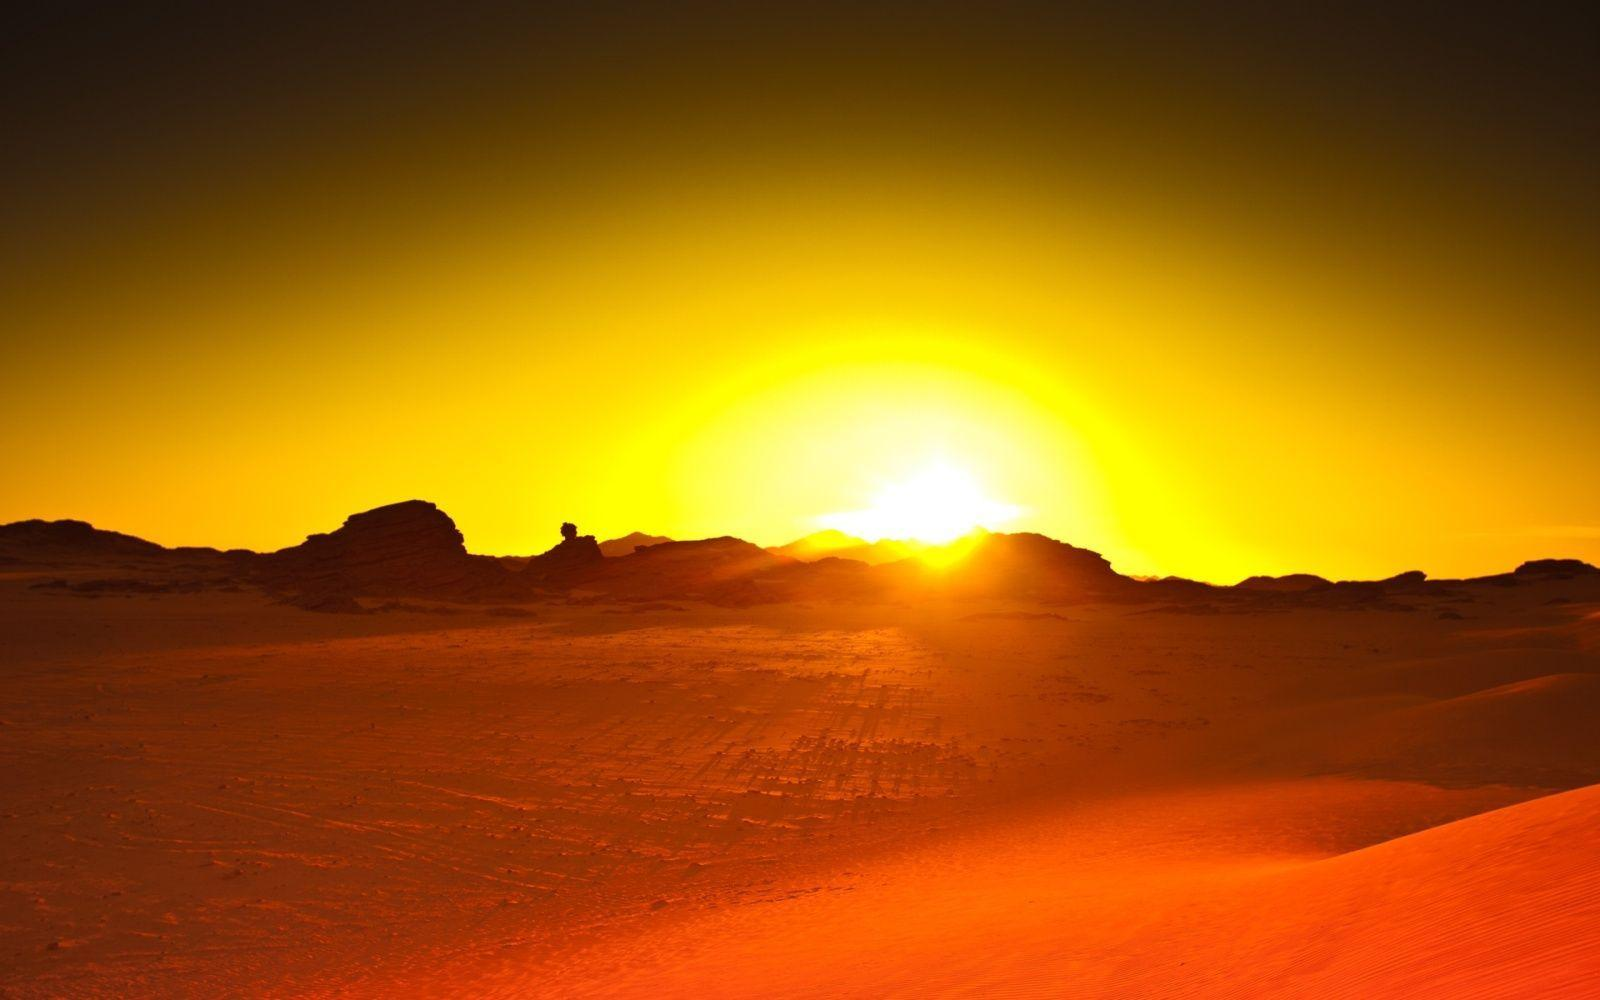 Desert Backgrounds Pictures - Wallpaper Cave